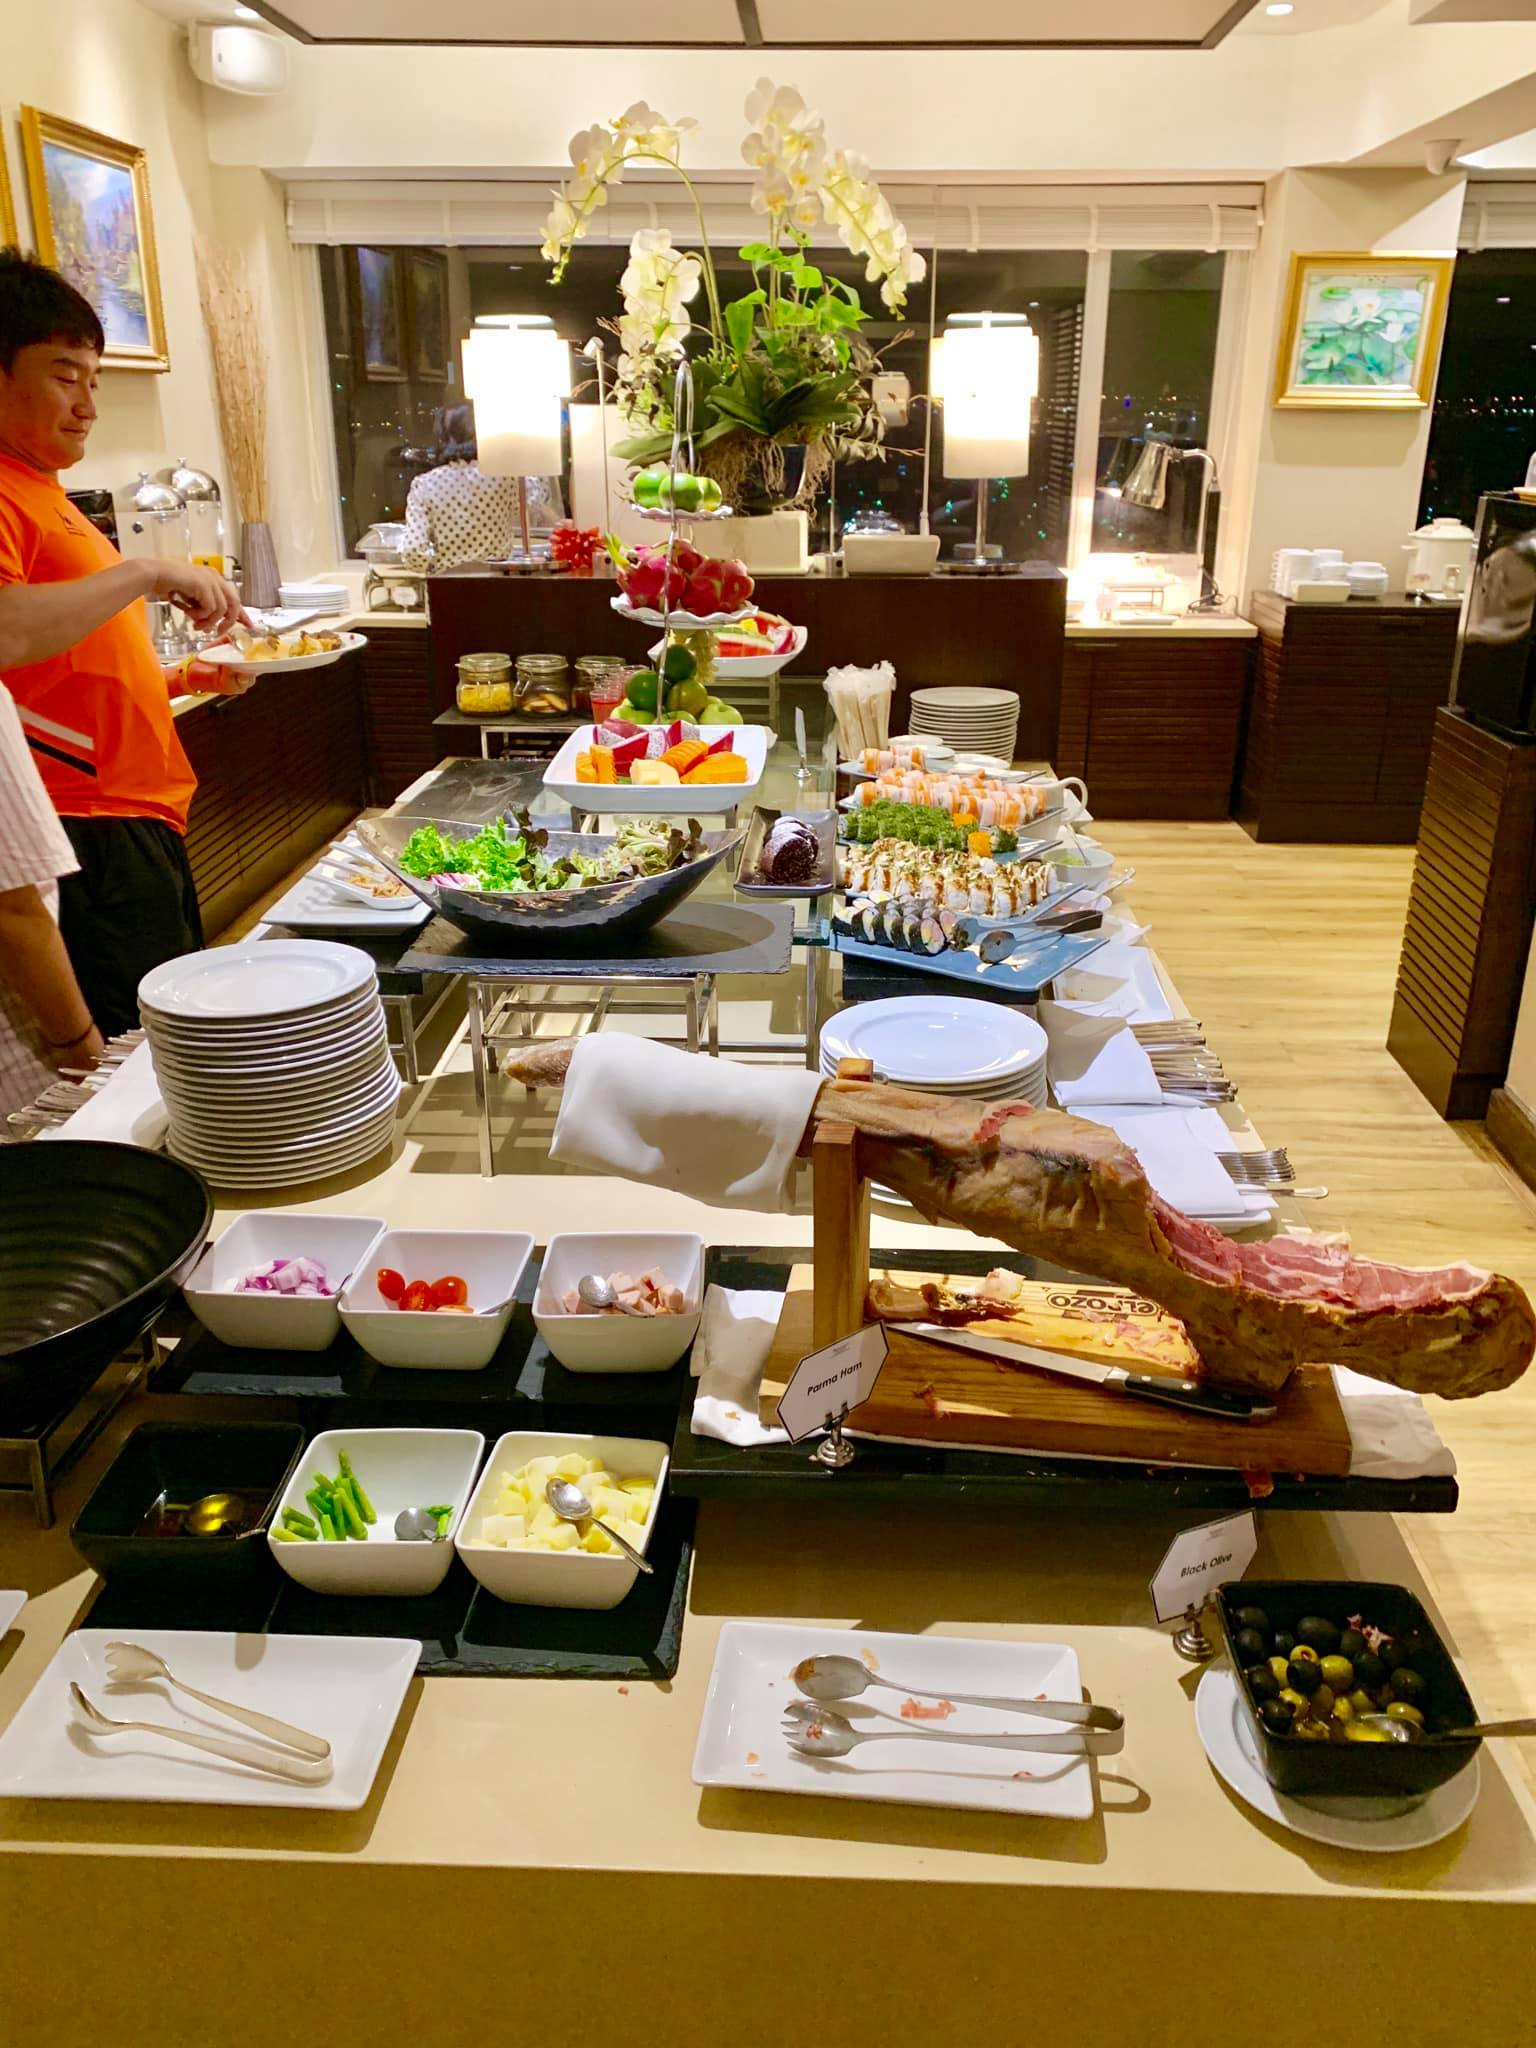 Our Luxurious Staycation At Ramada Plaza In Bangkok And Our Tour With Tinggly Experiences13